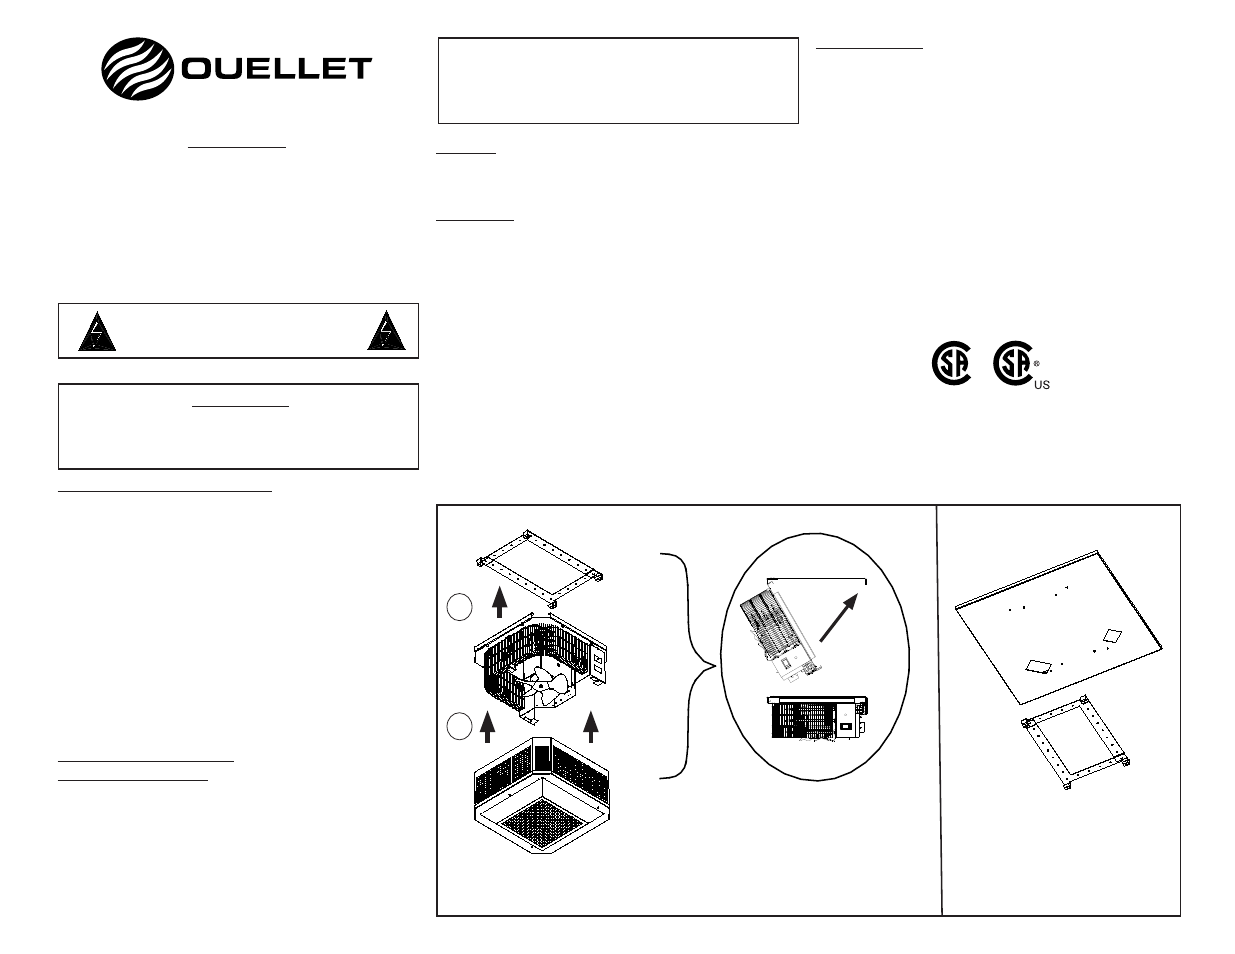 Ouellet Radiant Ceiling Heat Thermostat Wiring Schematic